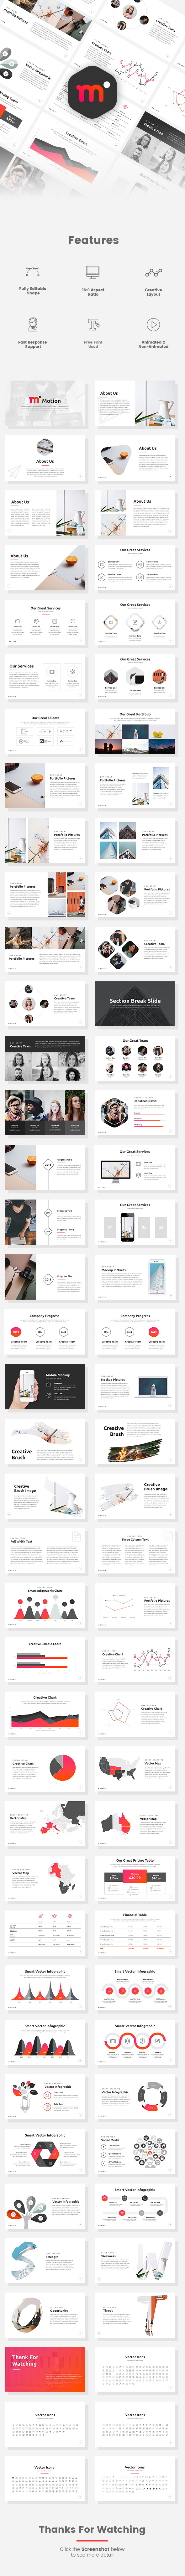 Motion - Creative Keynote Template - Creative Keynote Templates